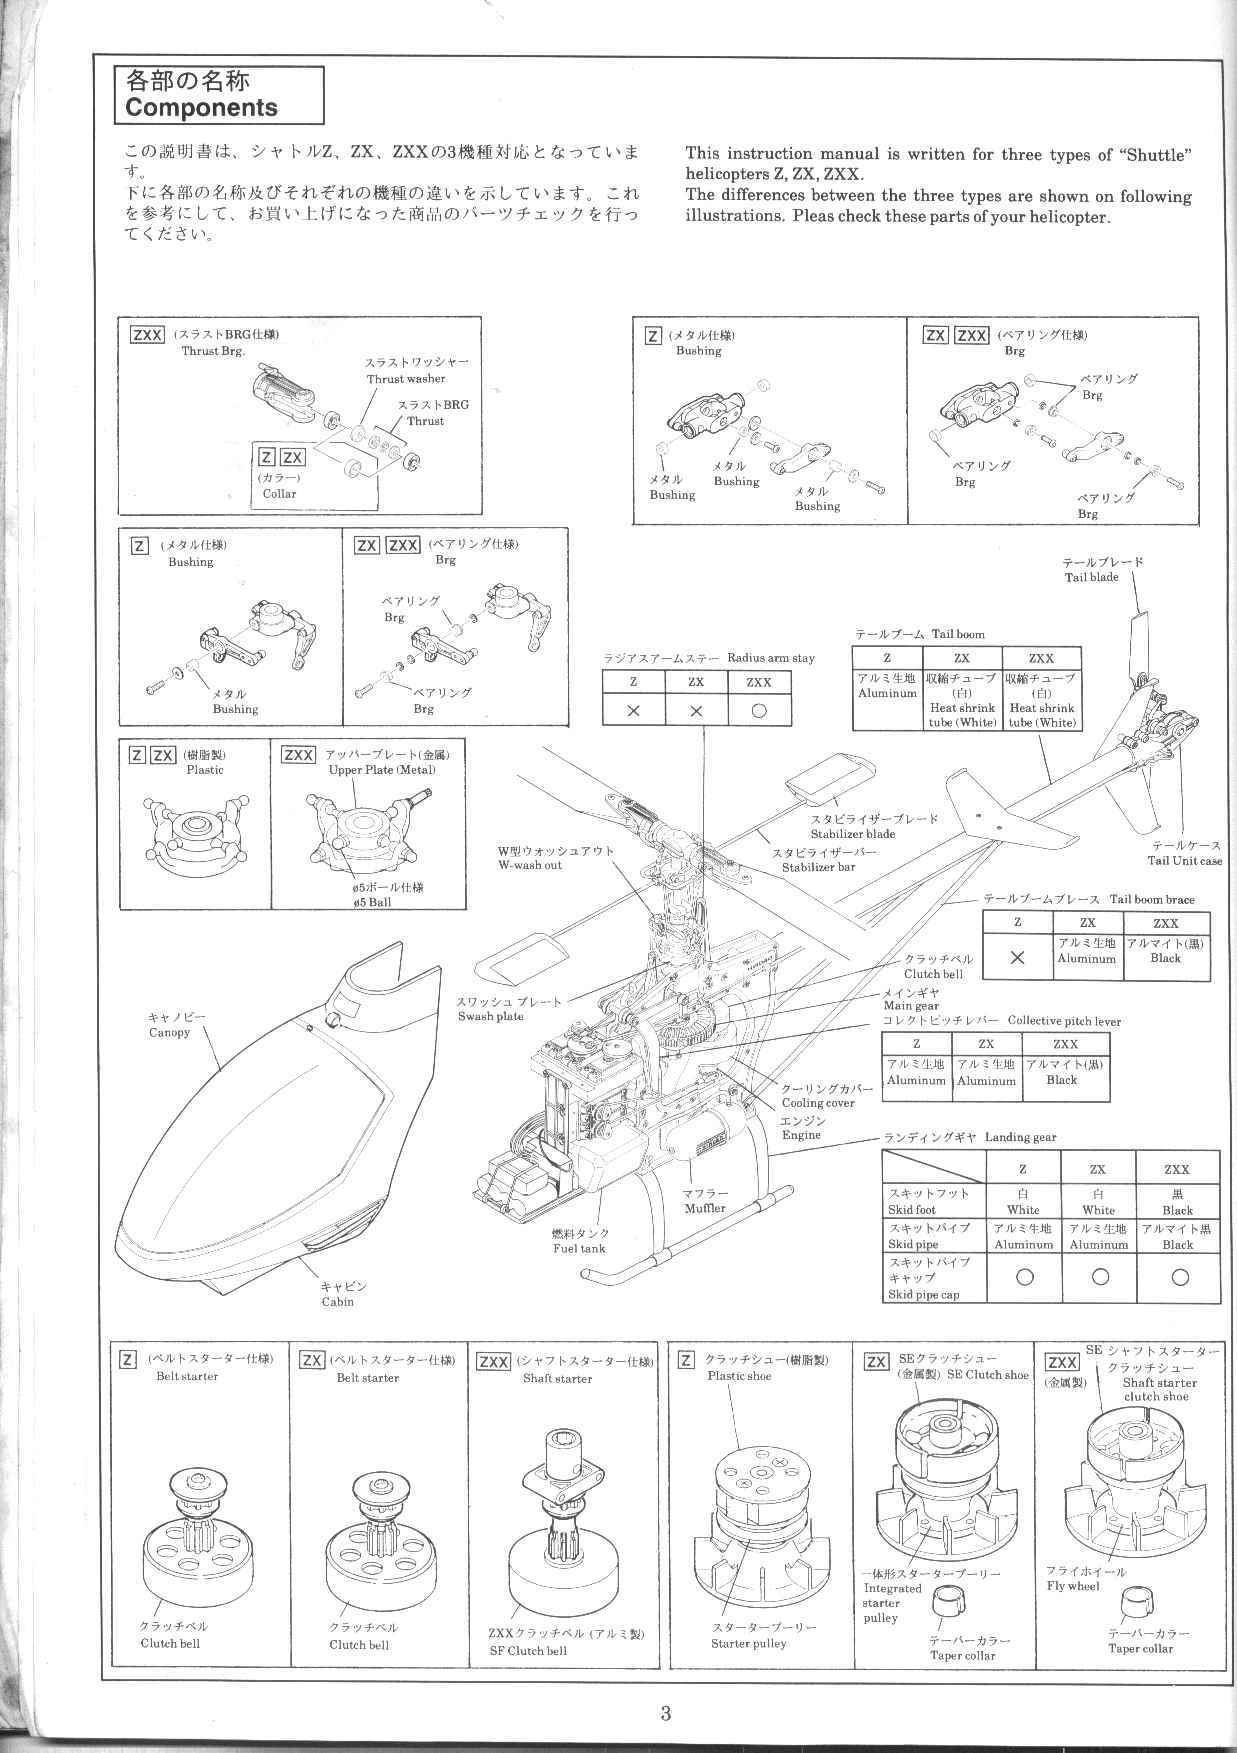 Hirobo Shuttle Assembly and Maintenance Manual The files are in jpg format.  They are quite big because I had to scan them 150dpi, otherwise the